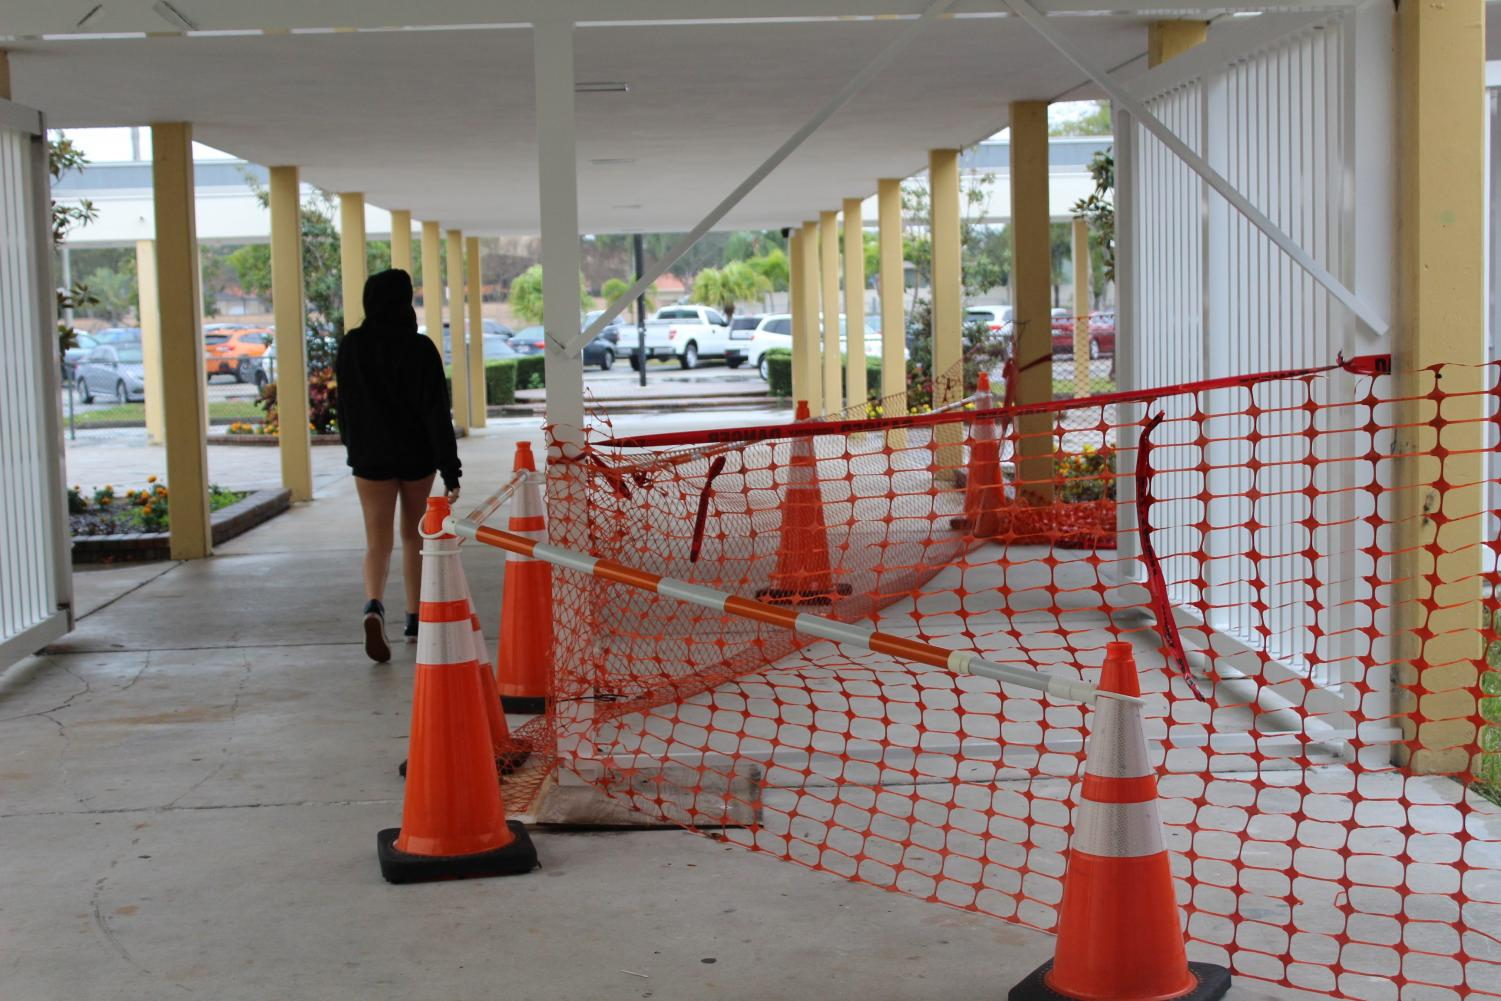 As part of increased security, construction on gate for single point of entry to school began on February 8.